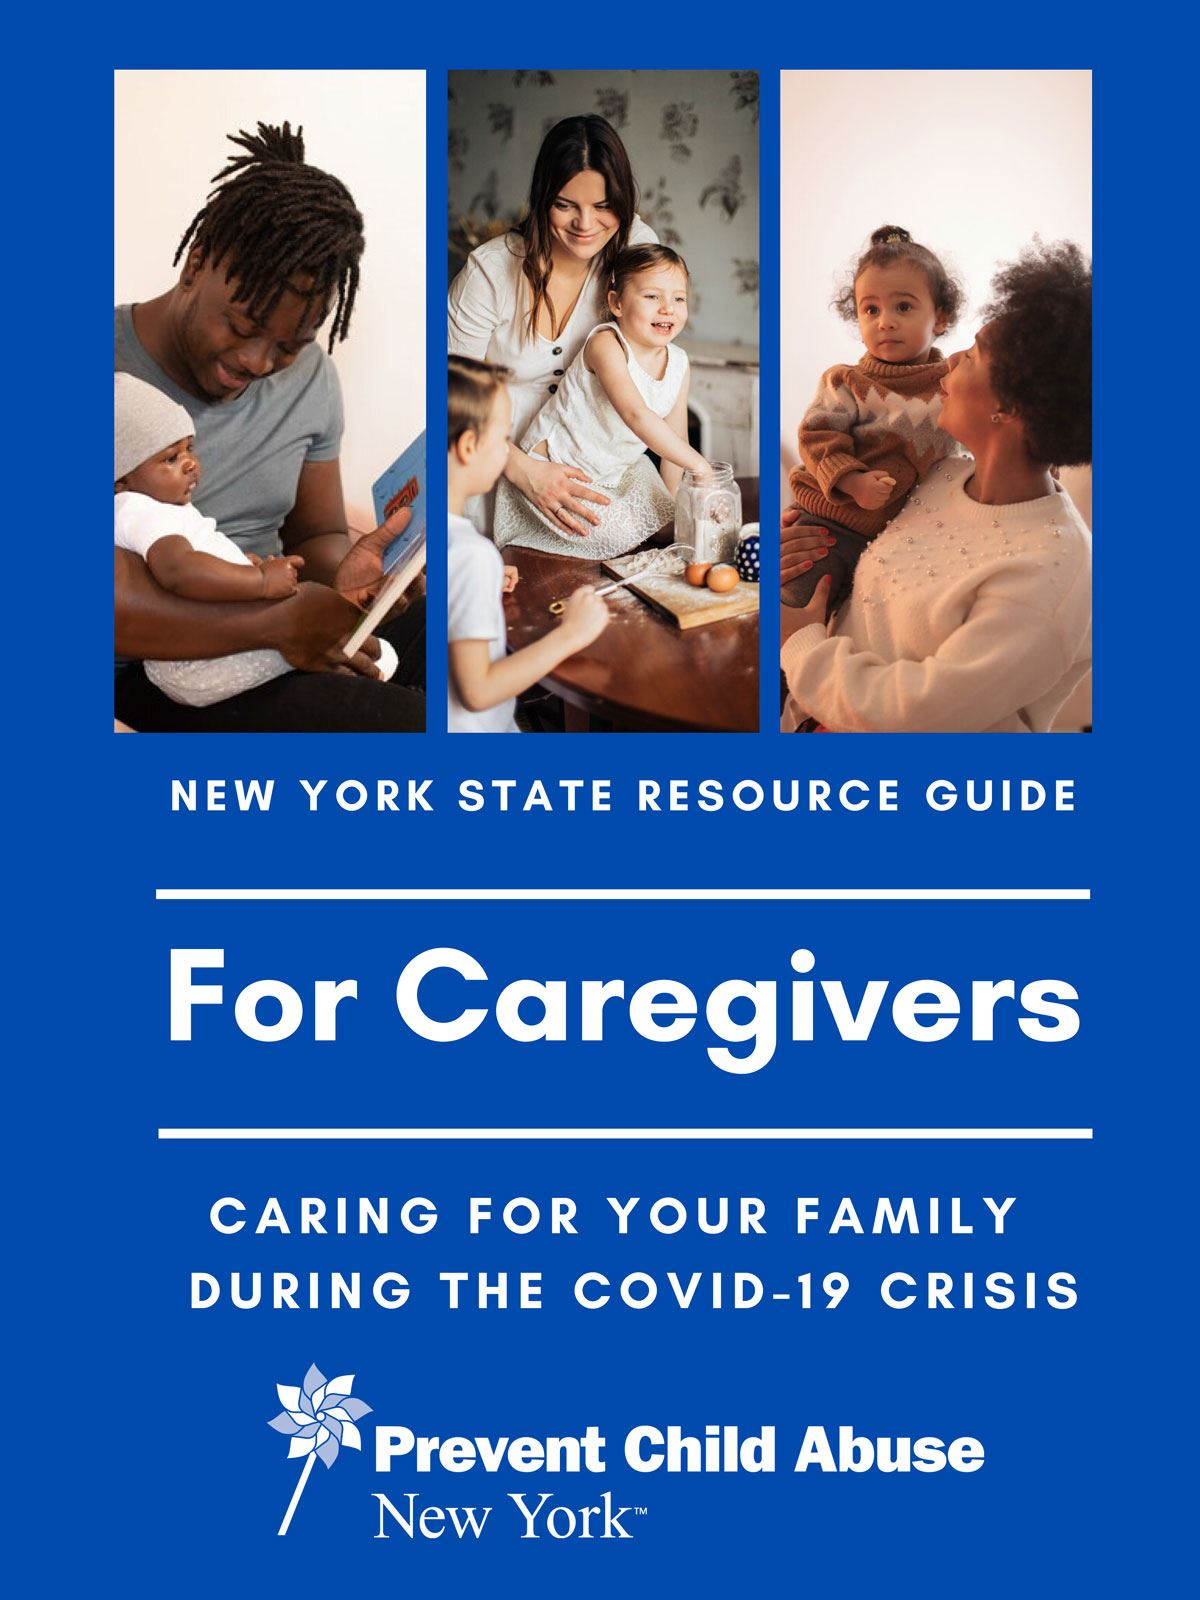 Caring for Your Family During the COVID-19 Crisis